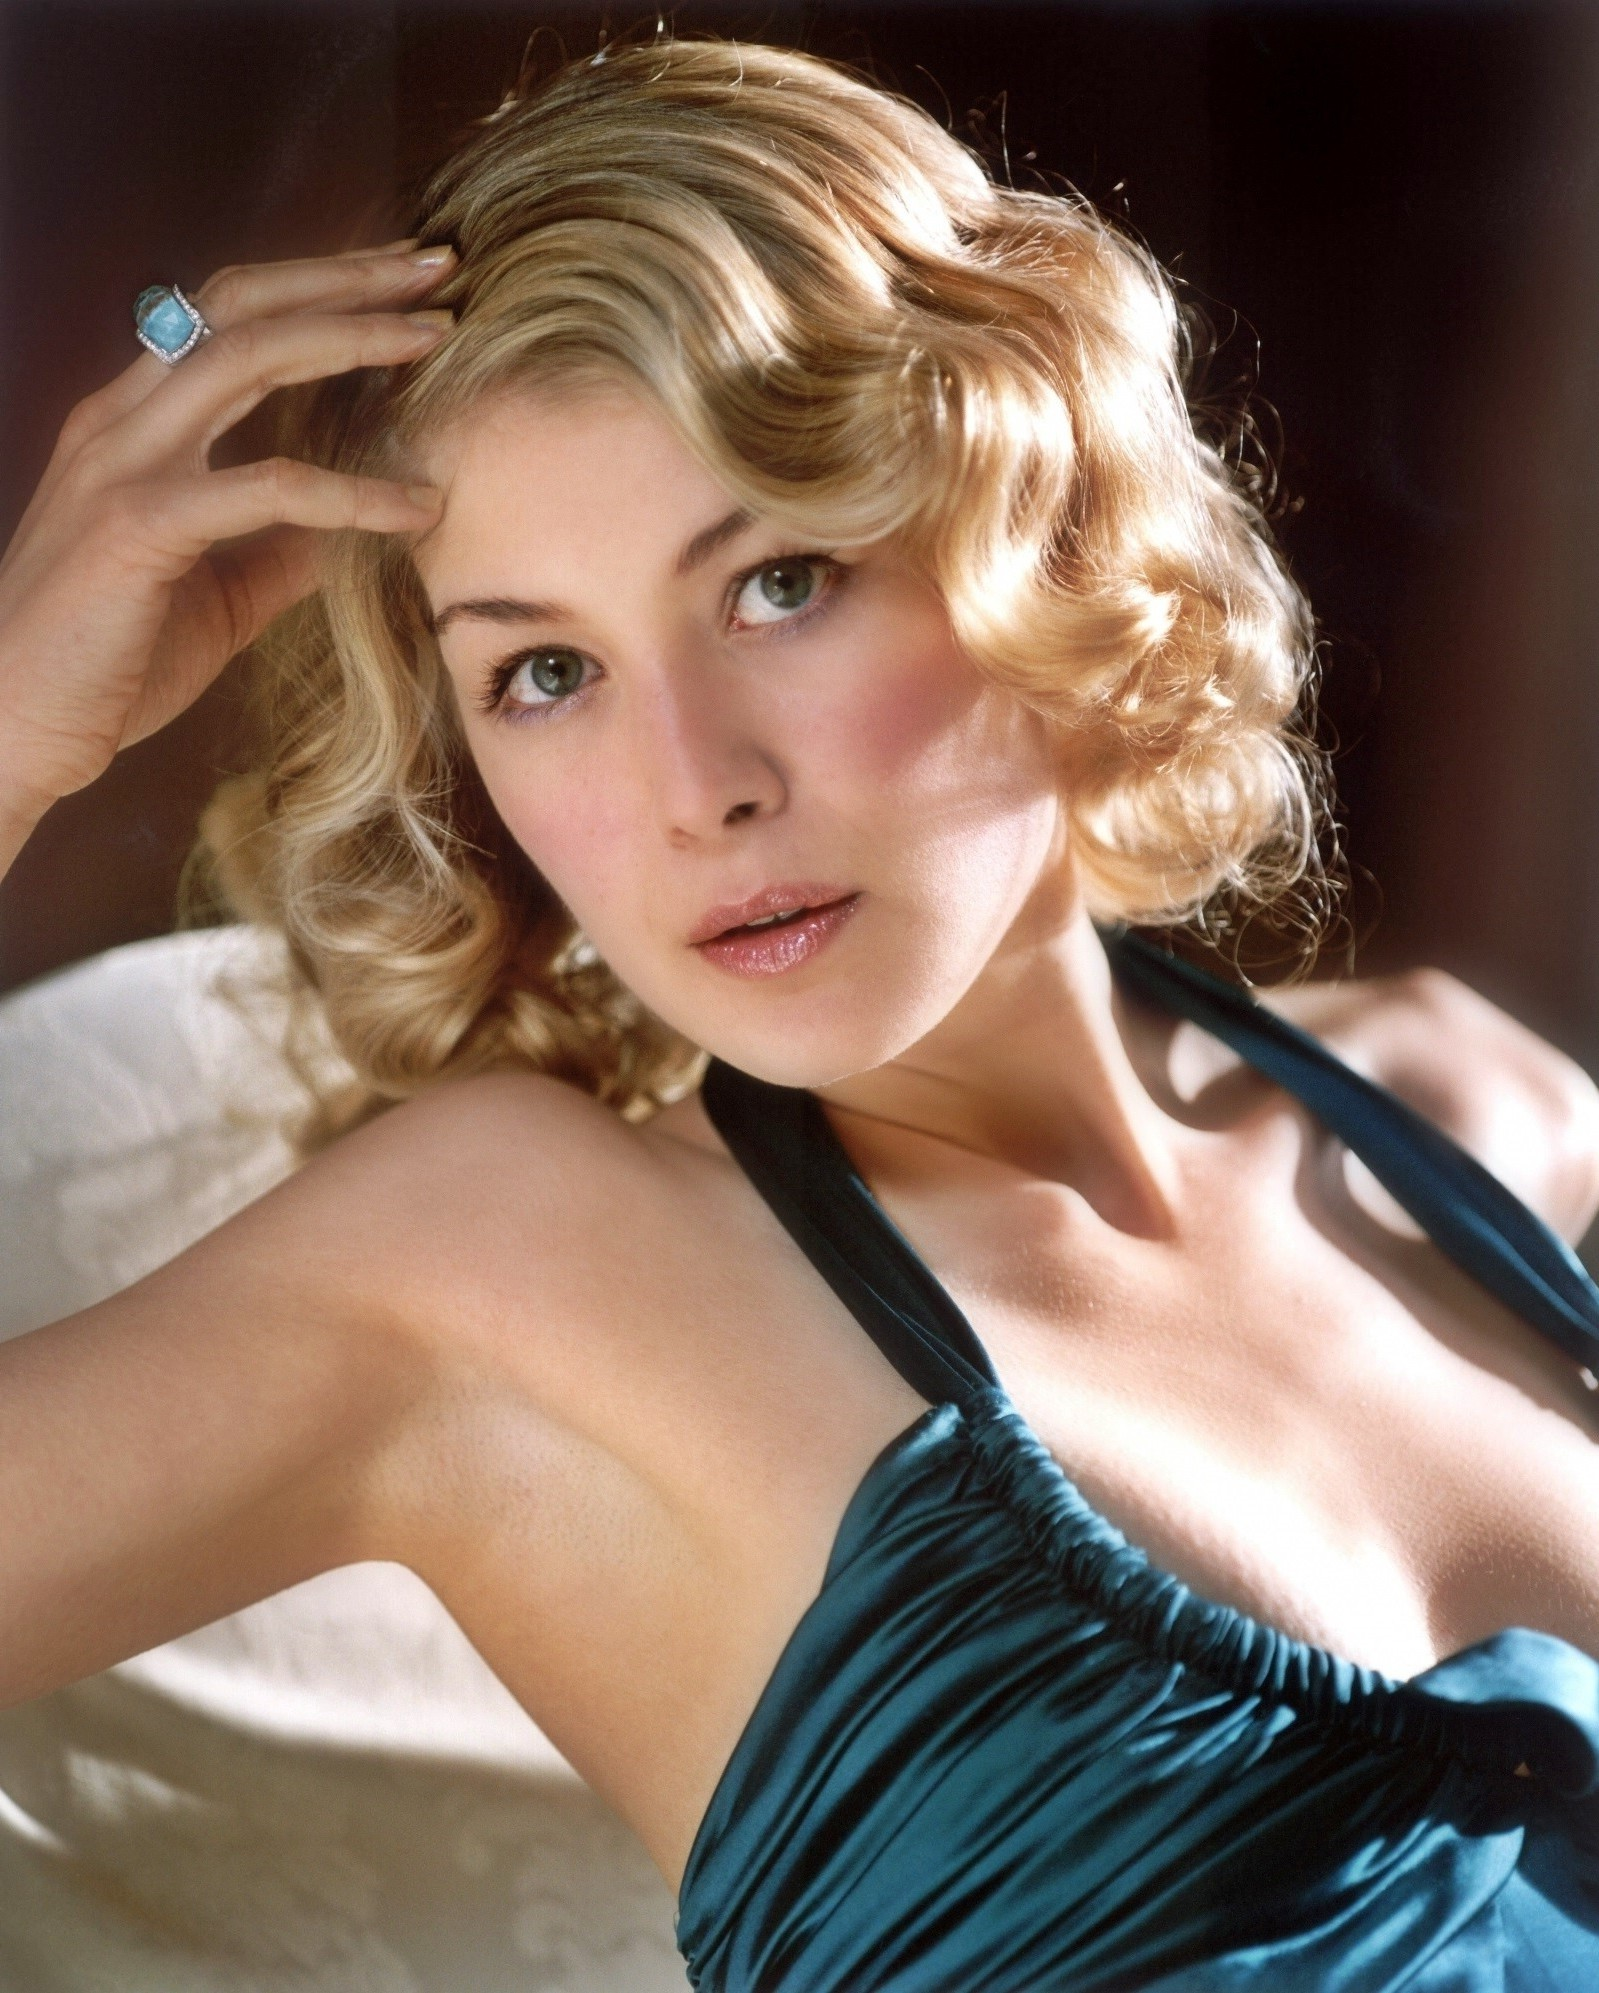 Free wedding dress sketches - Download Hd Wallpapers Of 103051 Armpits Rosamund Pike Free Download